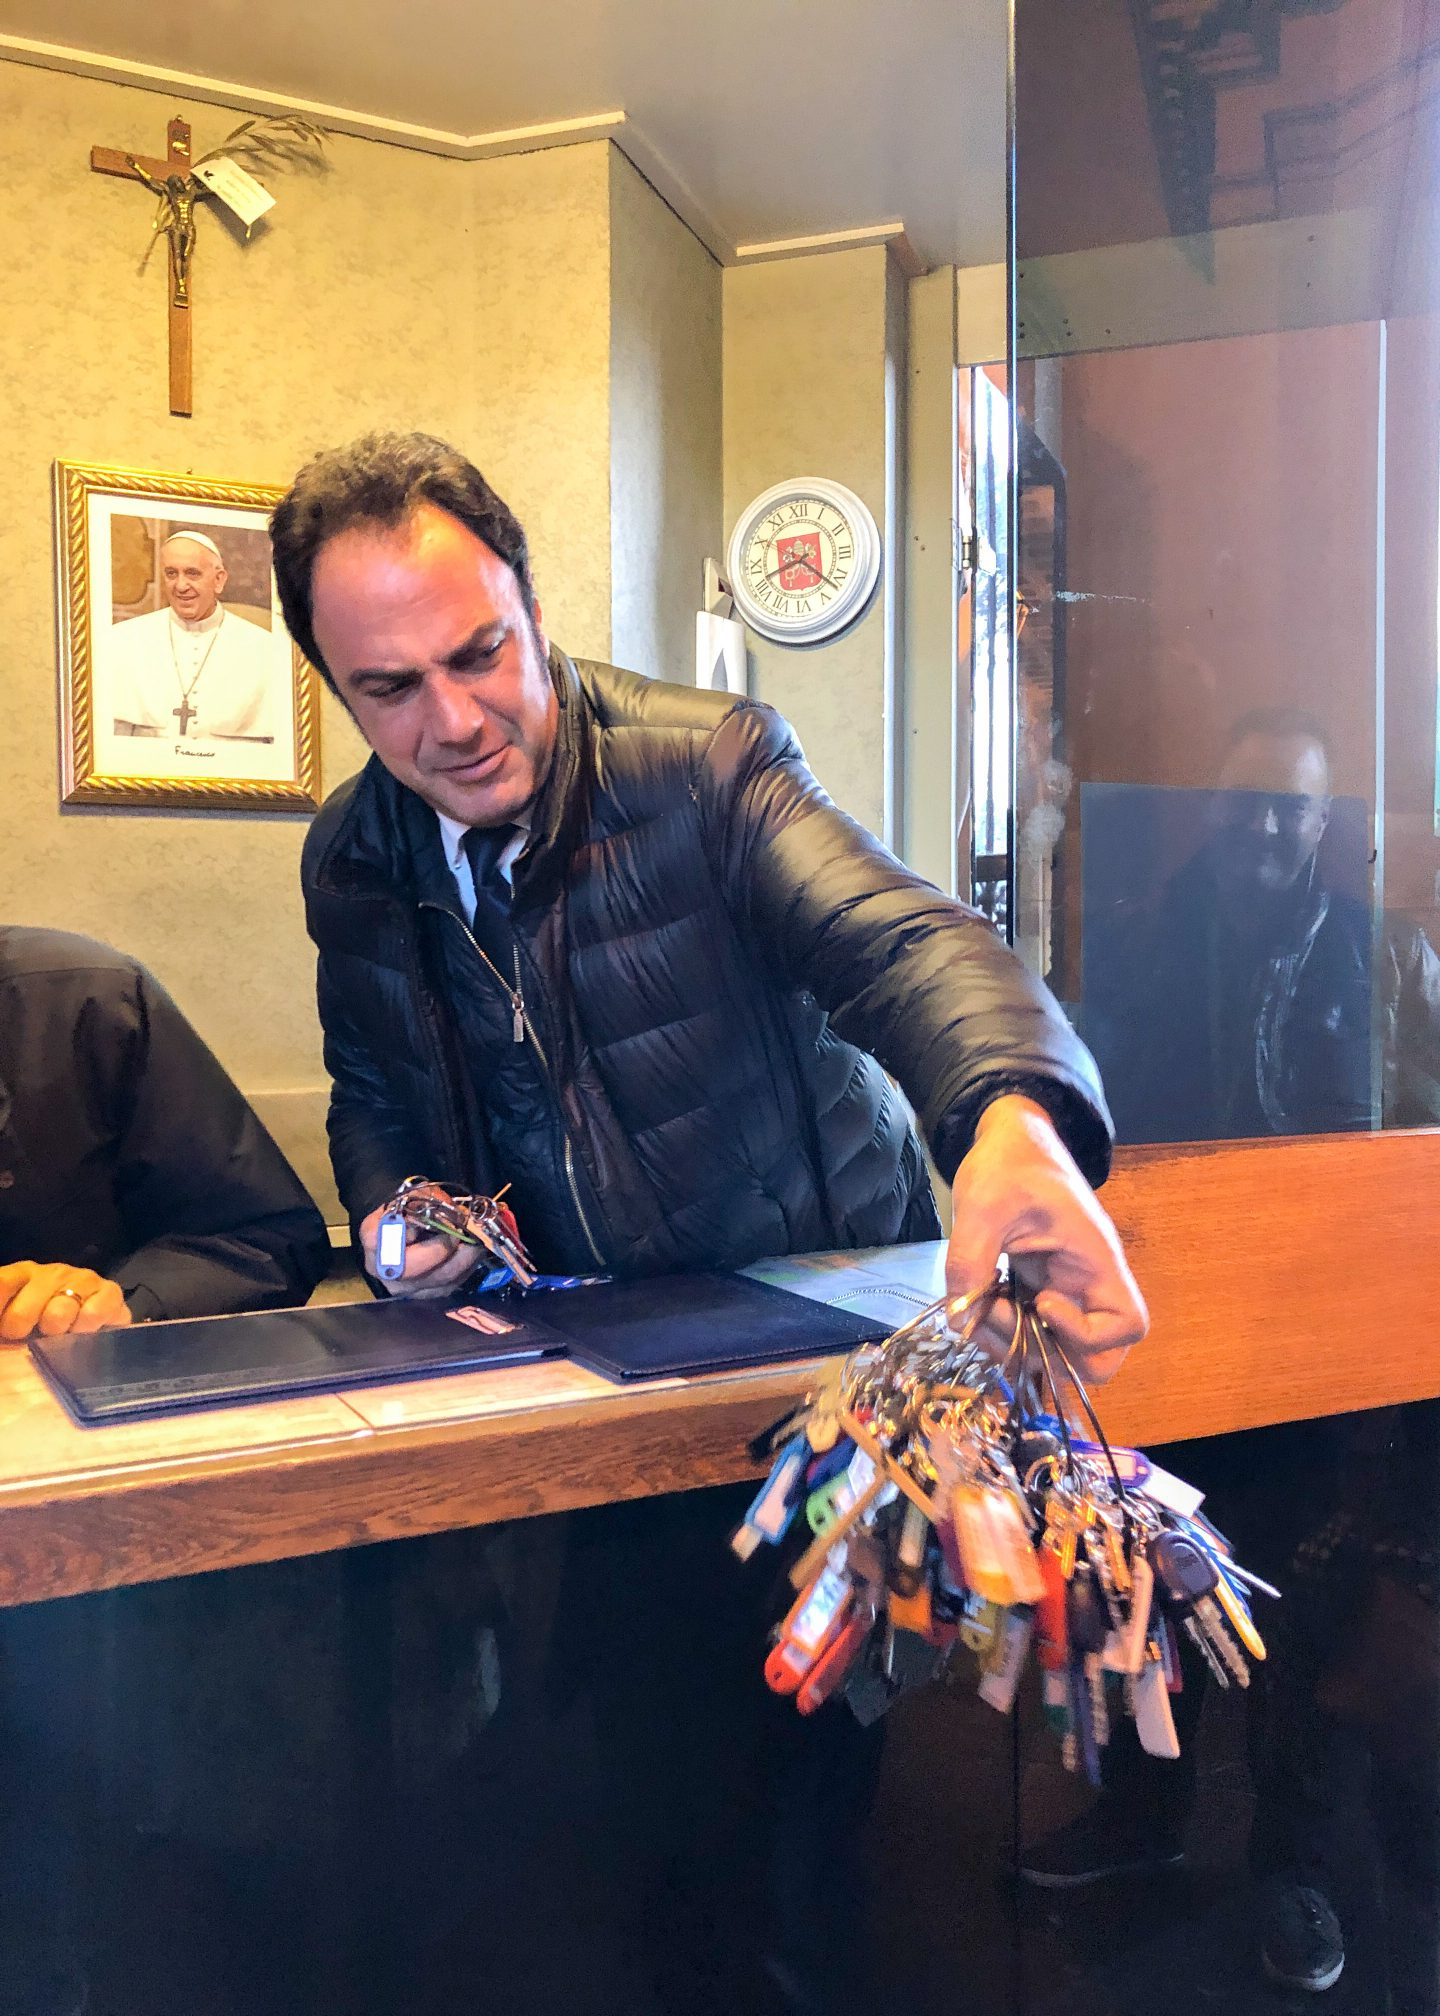 The curator of the Vatican Museums with keys to the Vatican